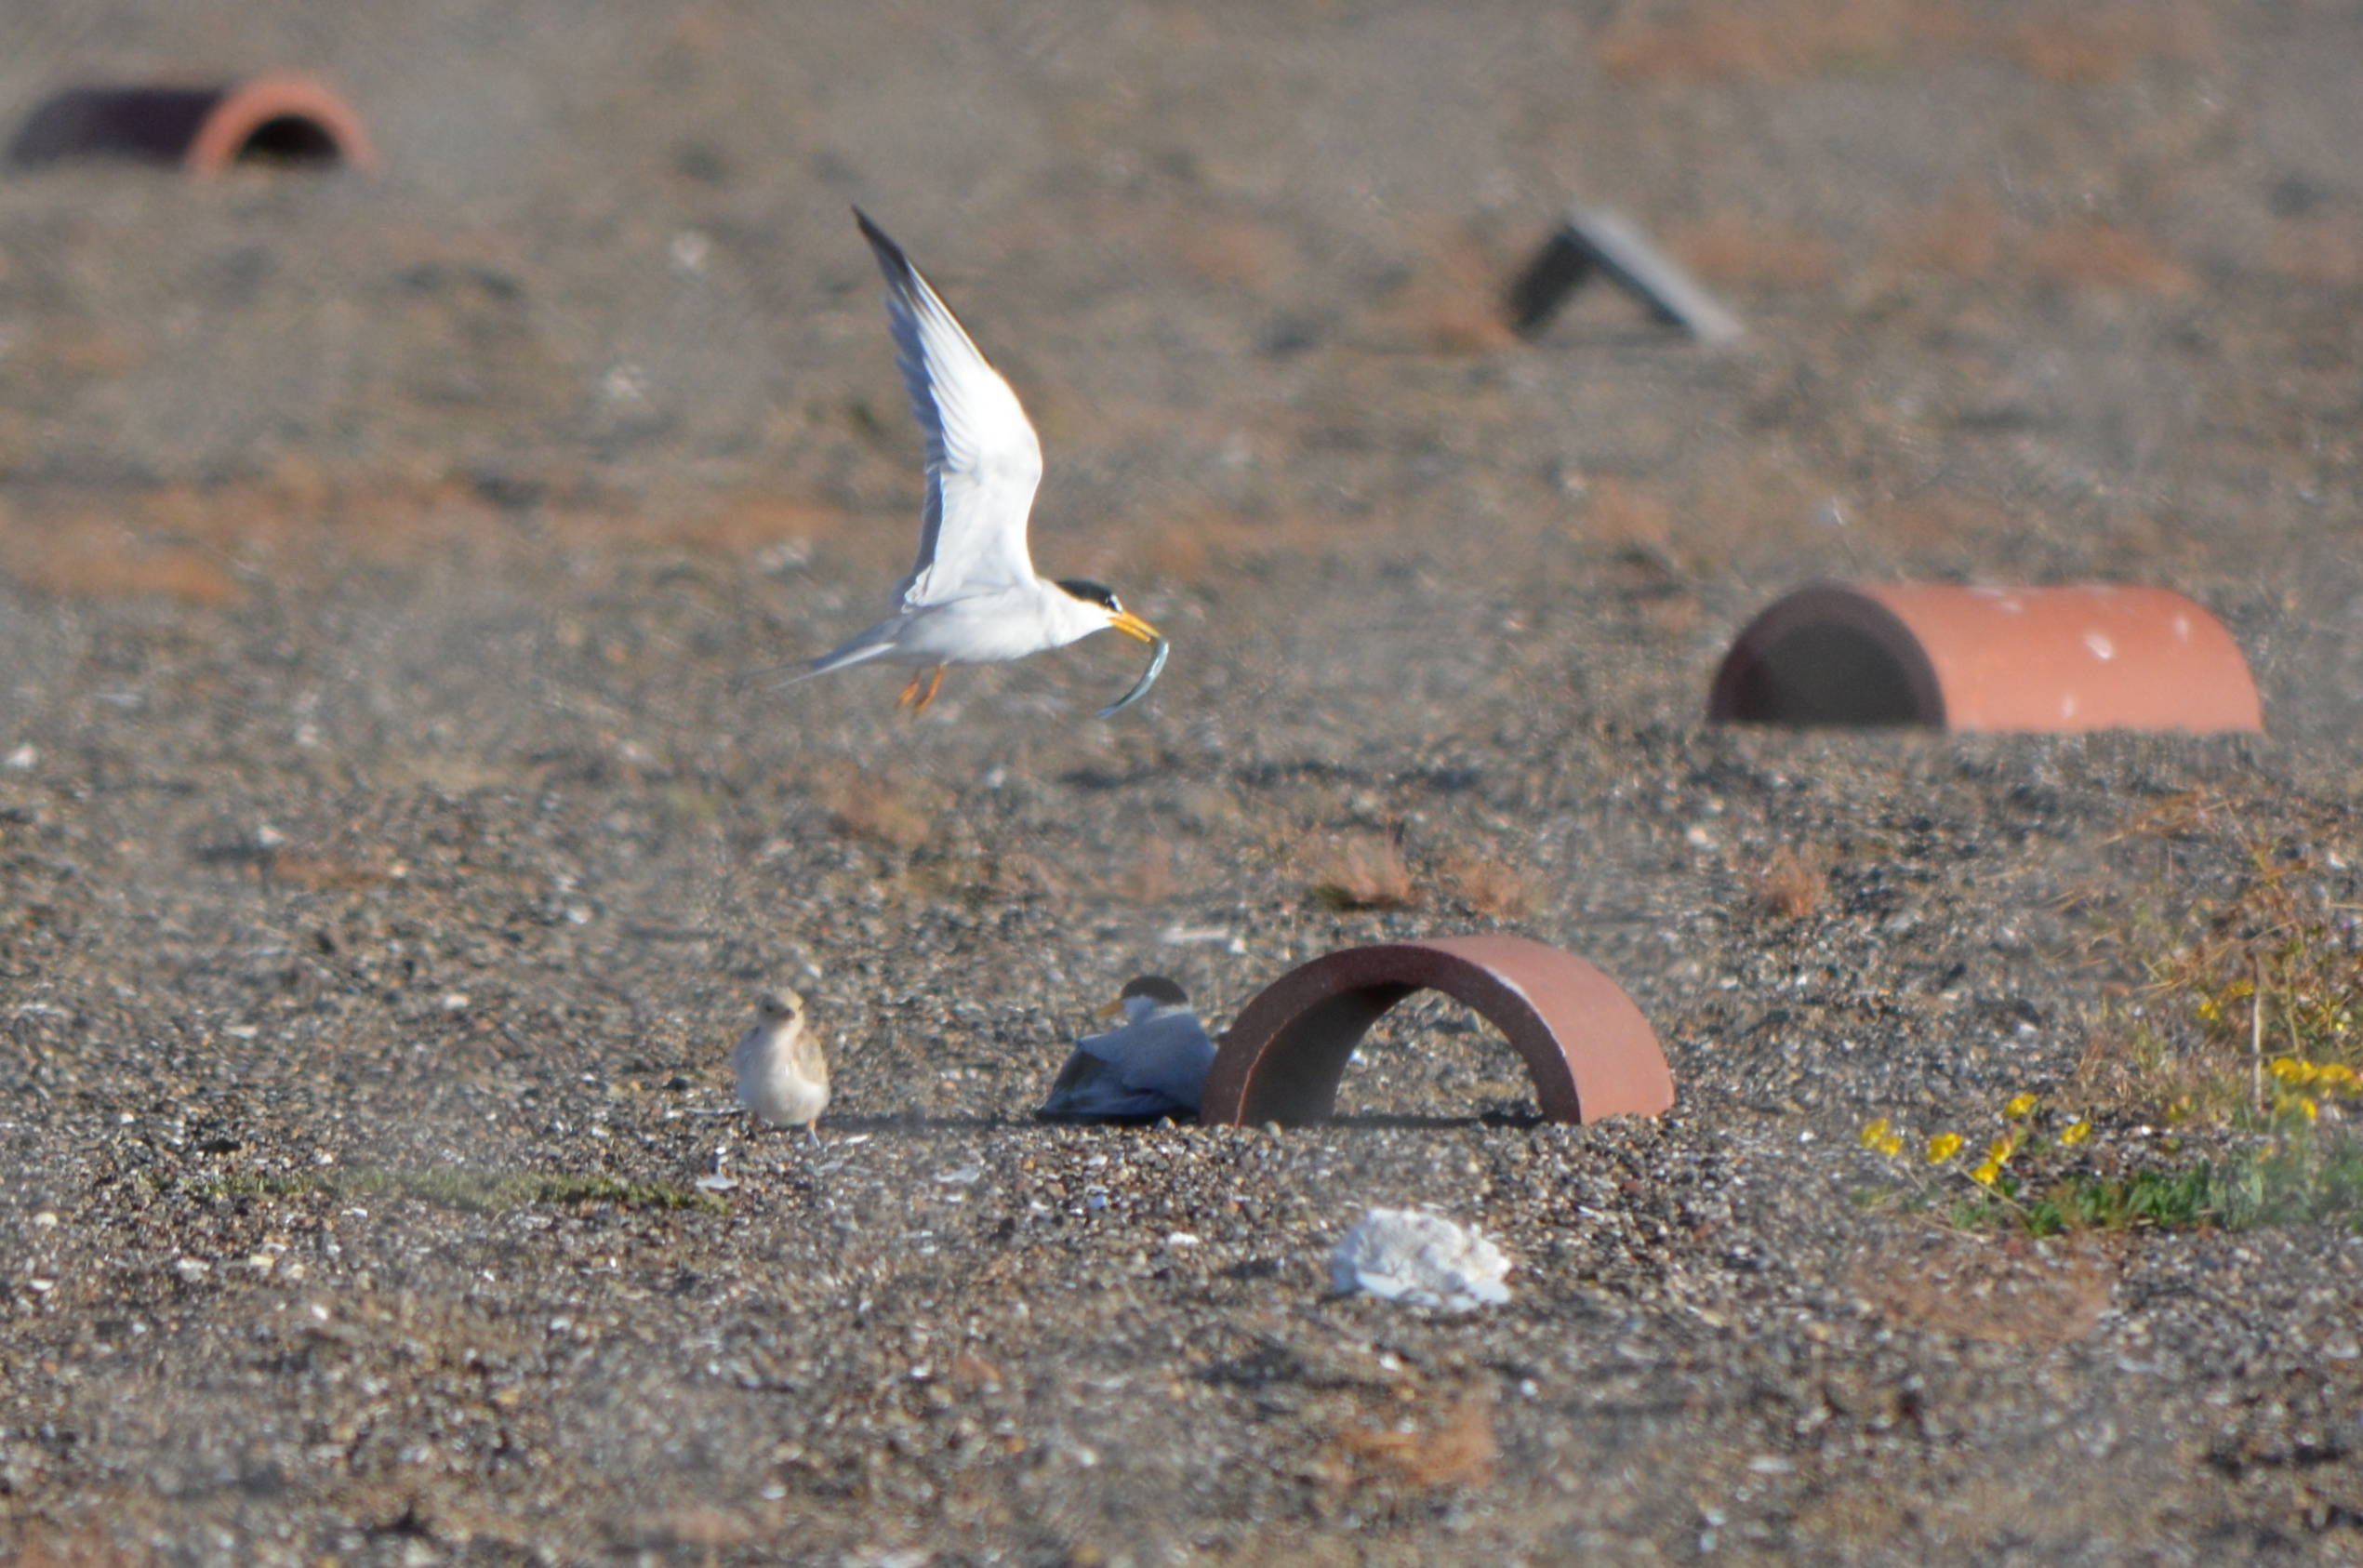 Least Tern chick, adult with fish, and resting adult, next to tile used for shelter, June 2014.